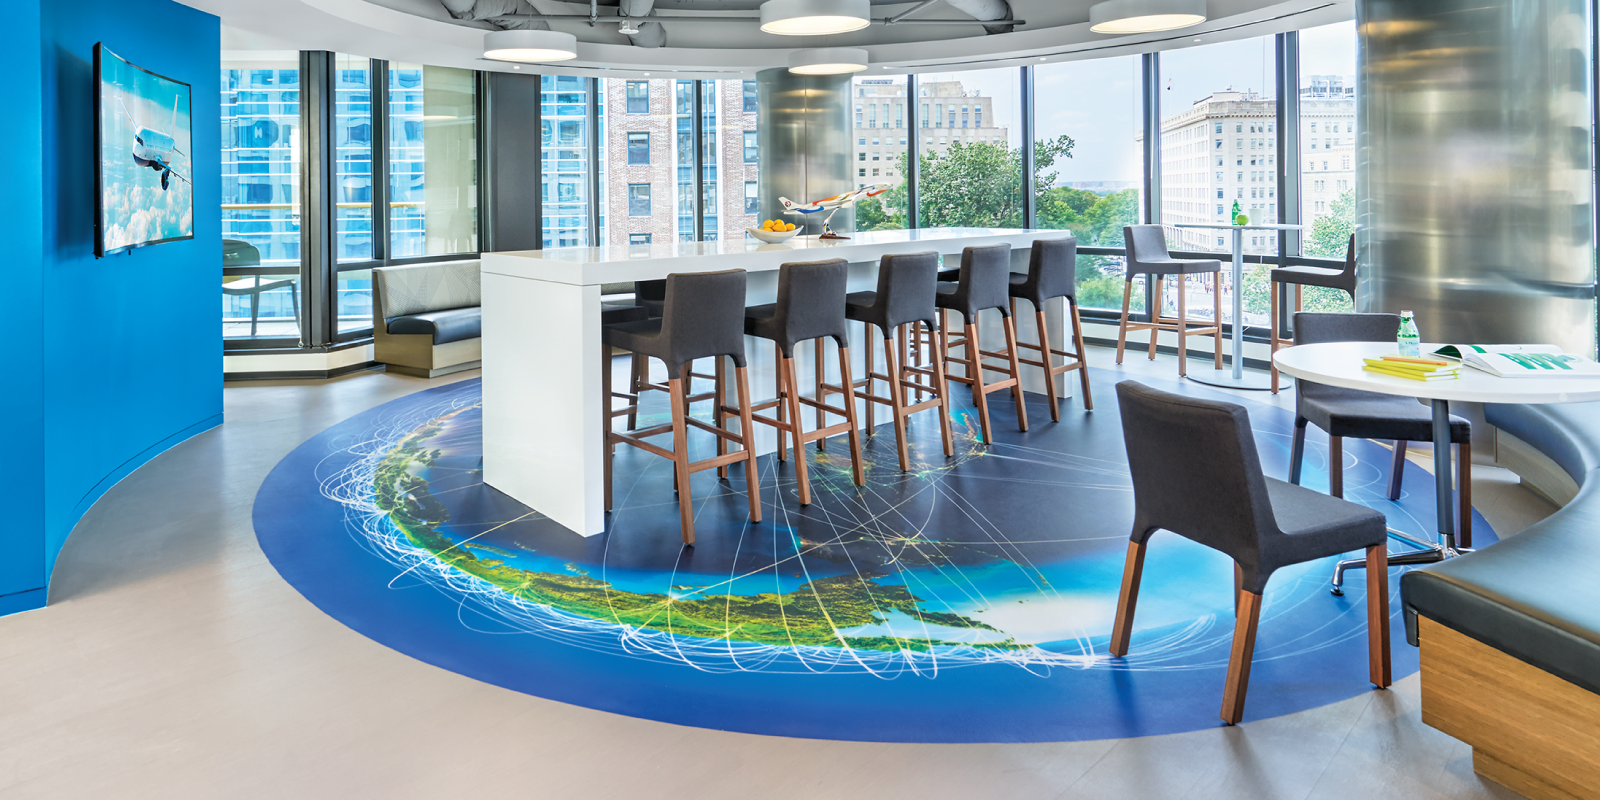 Commercial Flooring Sales & Consulting | Trinity Surfaces Trinity ...